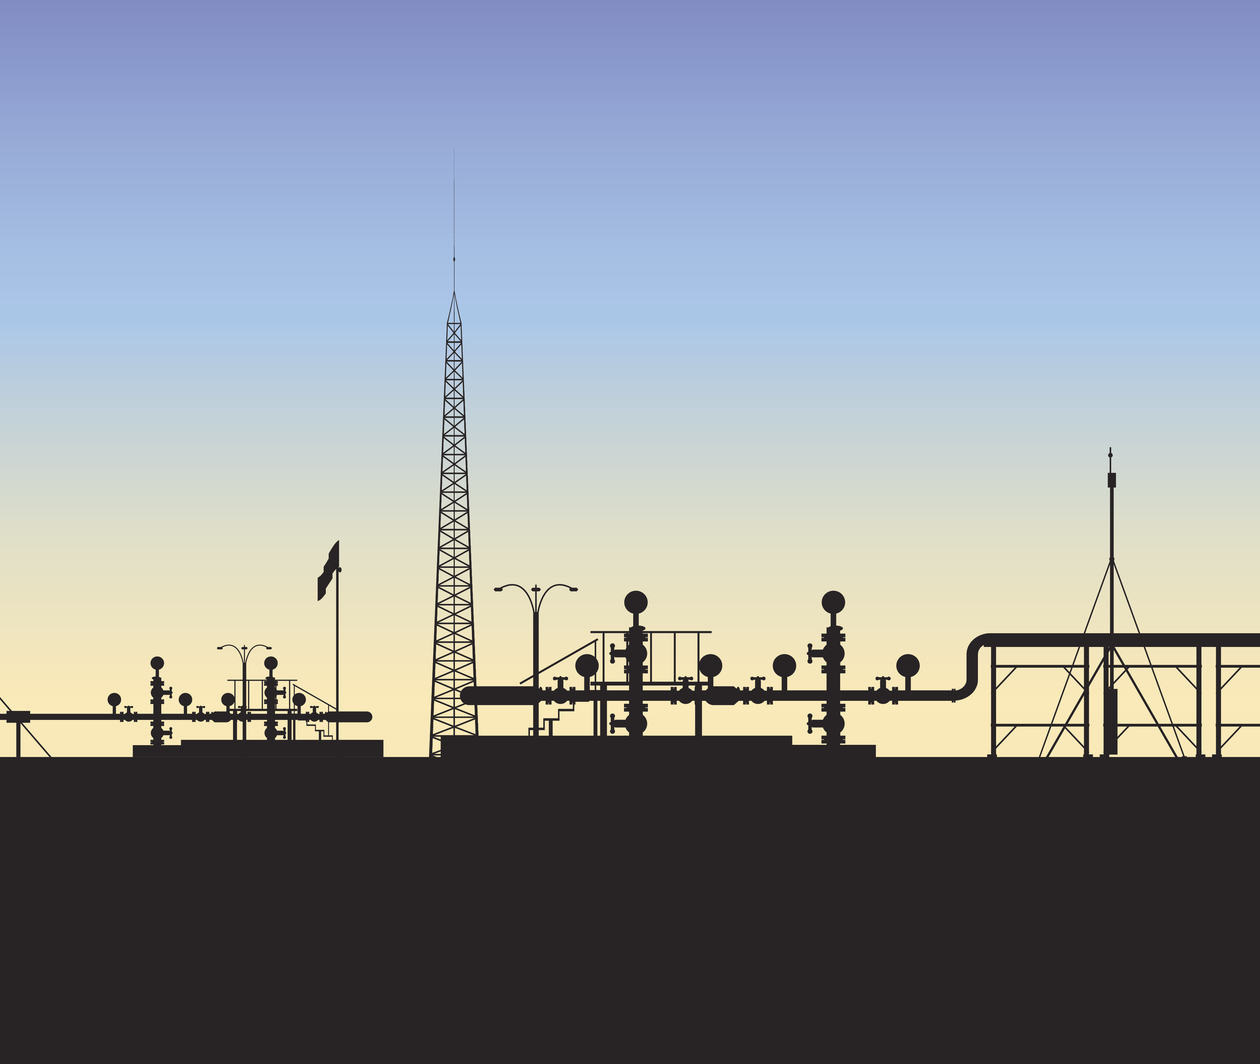 Global Resource Politics: the Past, Present and Future of Oil, Gas and Shale